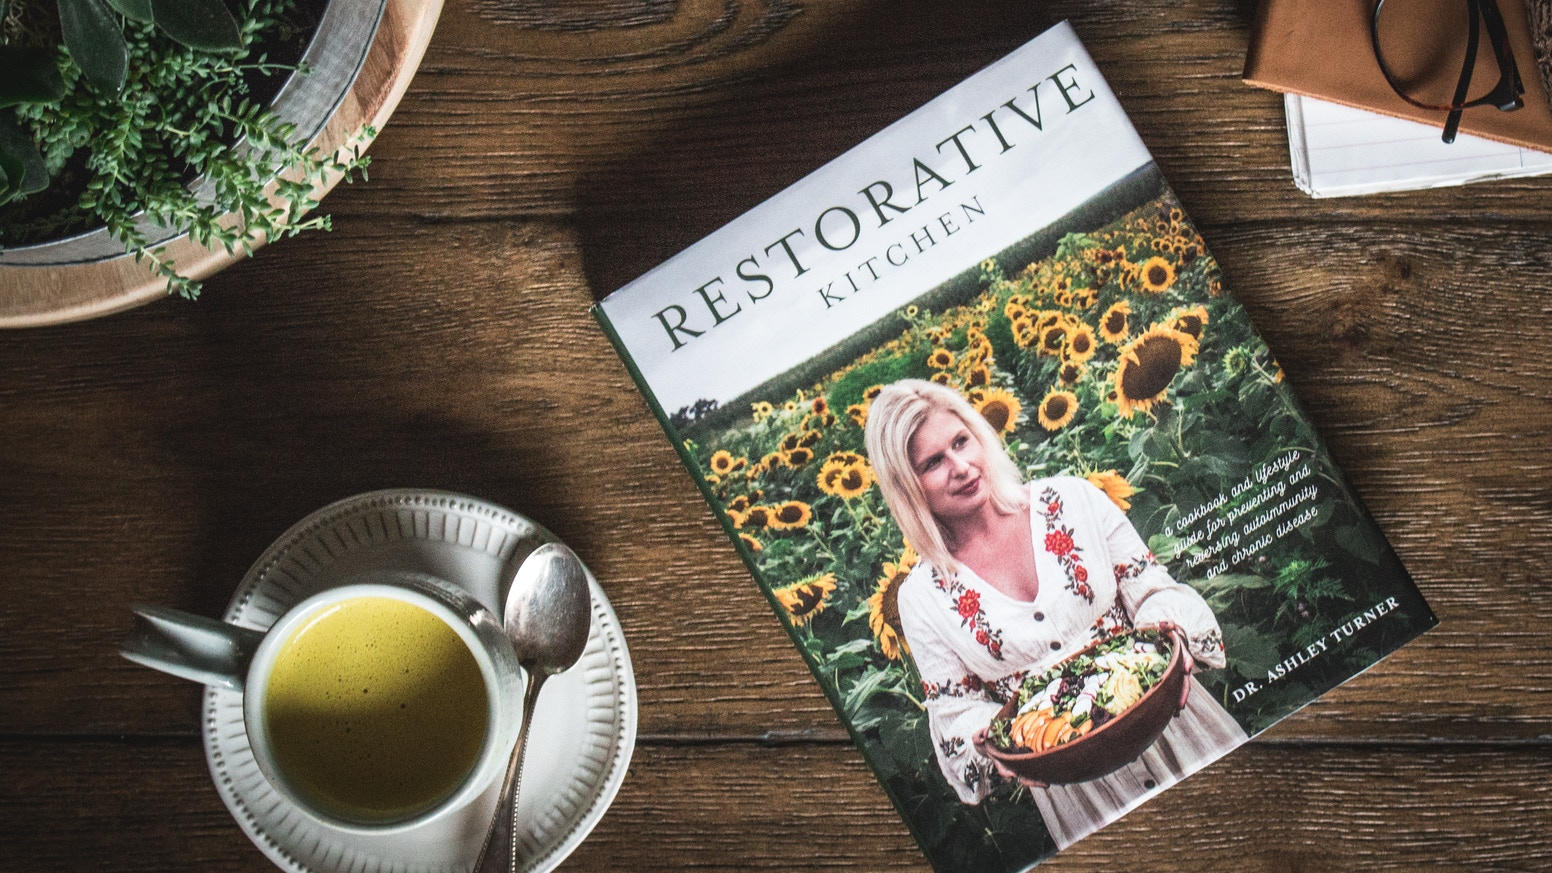 A cookbook and lifestyle guide for preventing and reversing chronic disease and autoimmunity